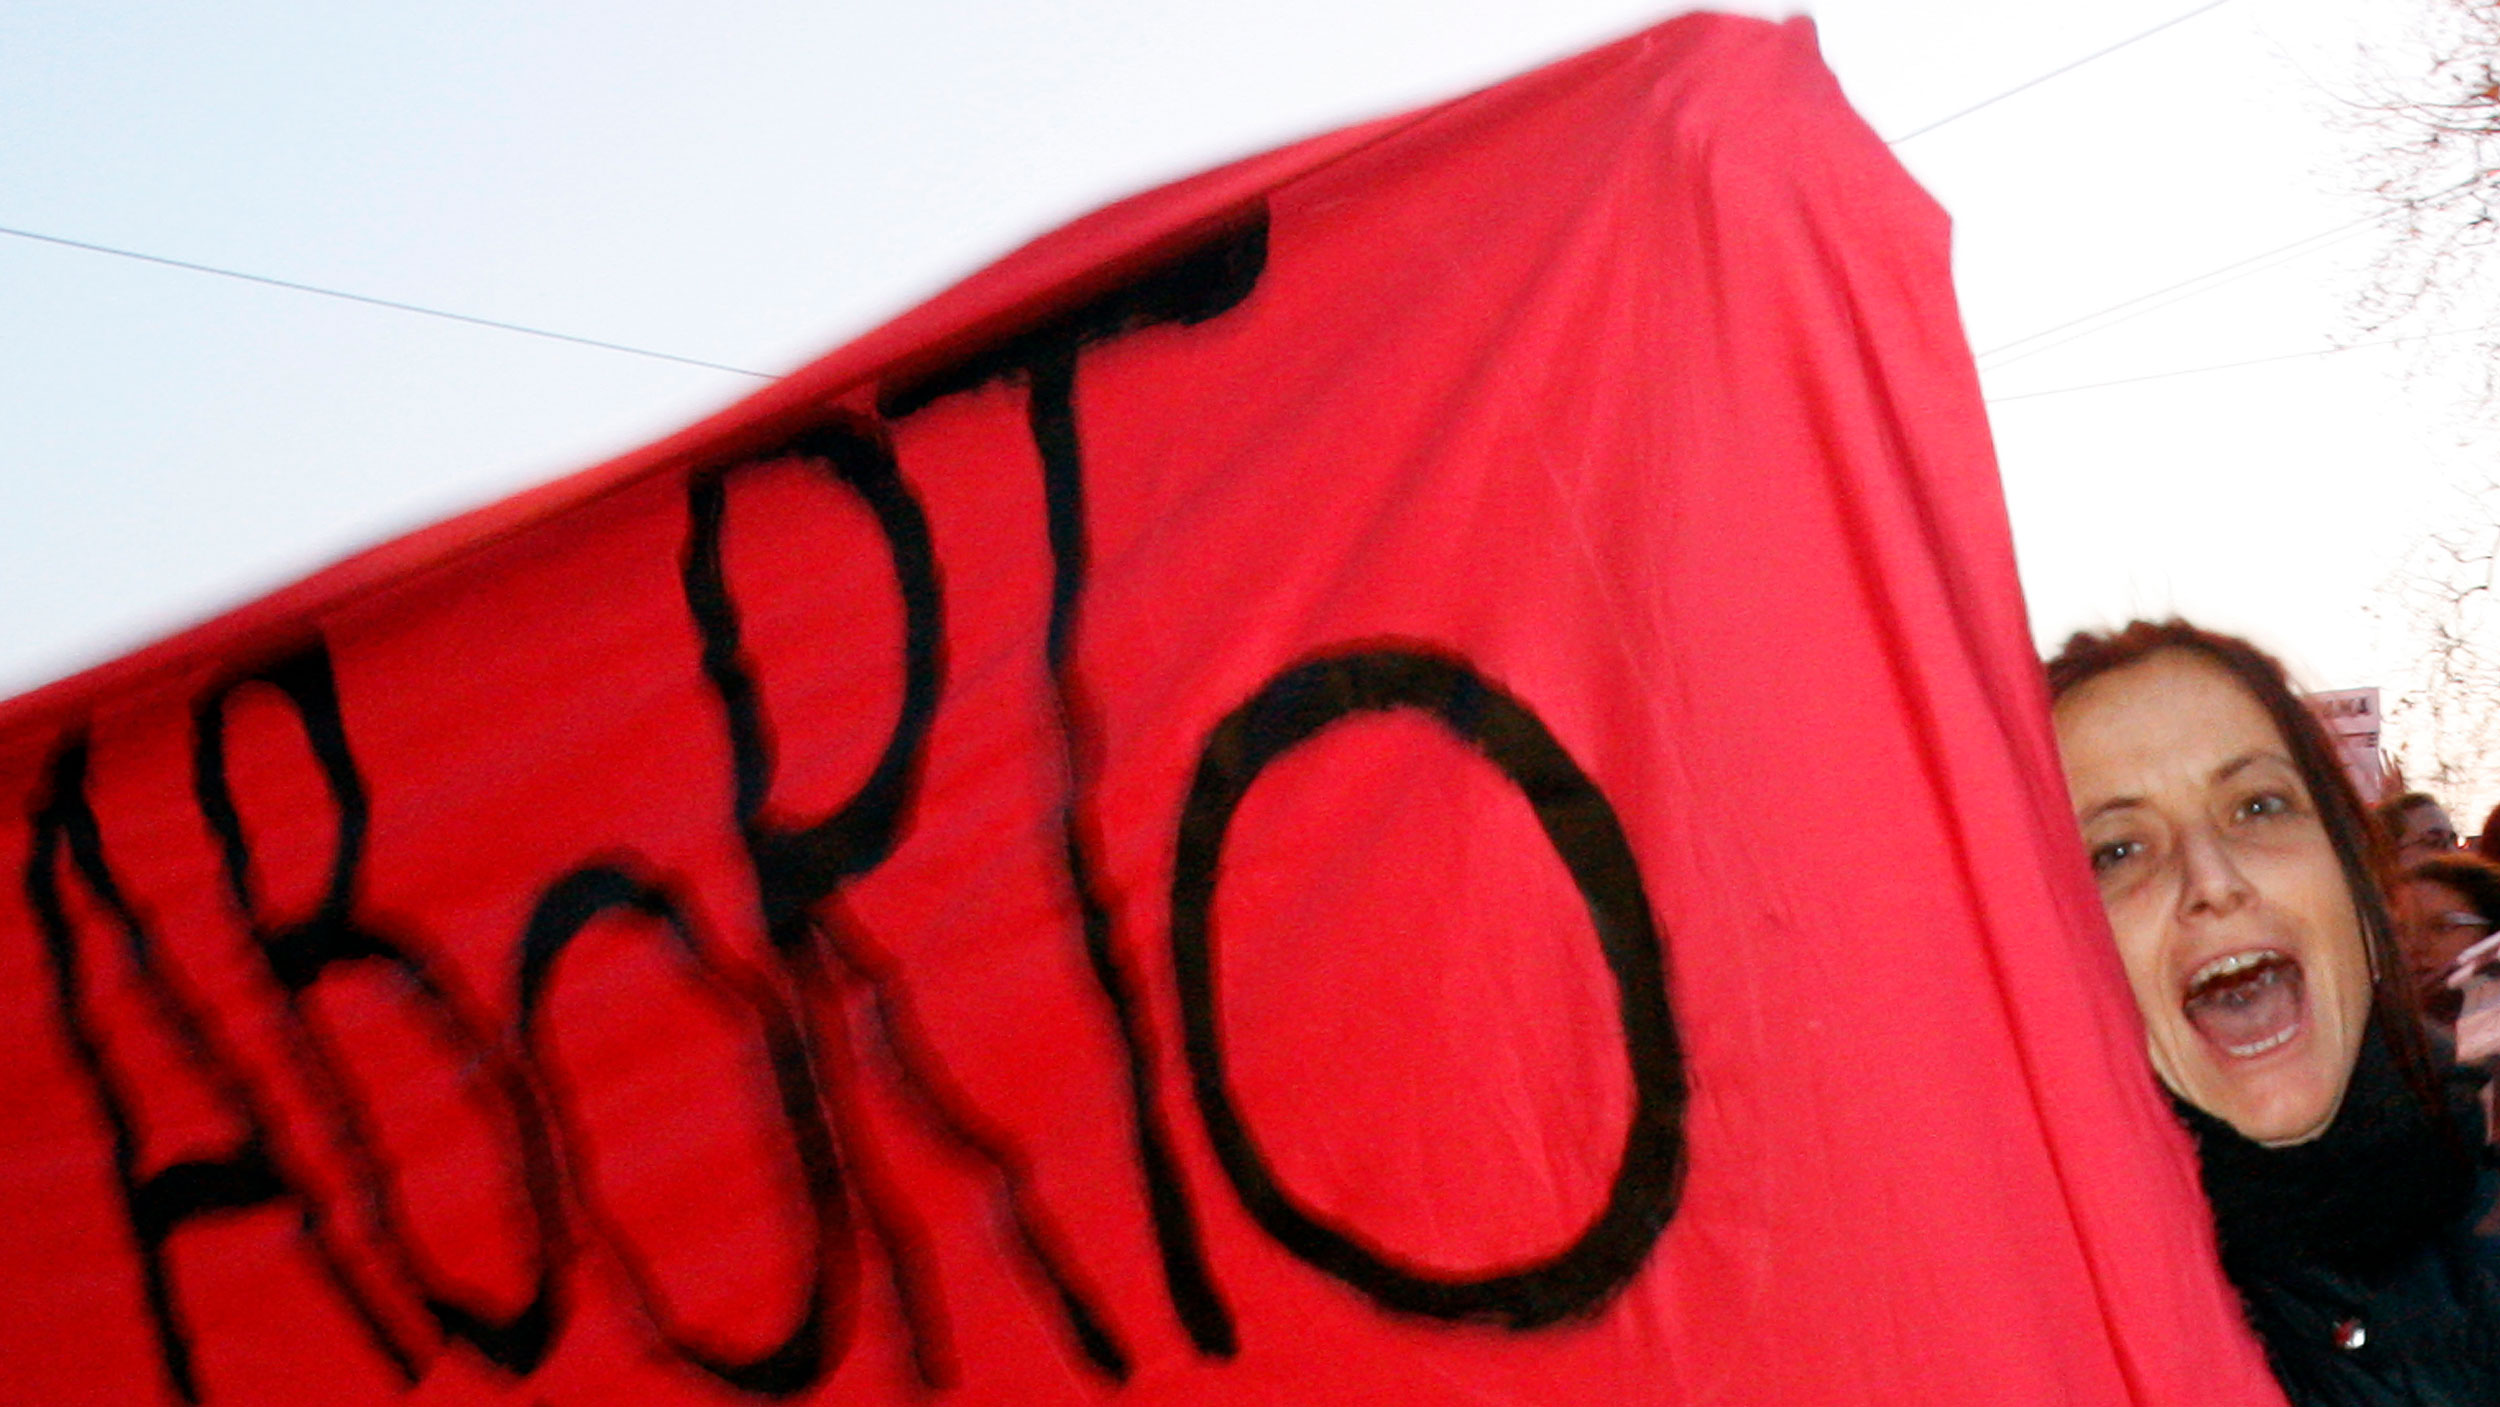 "A woman's face looks out from behind a red protest banner that says ""aborto"""